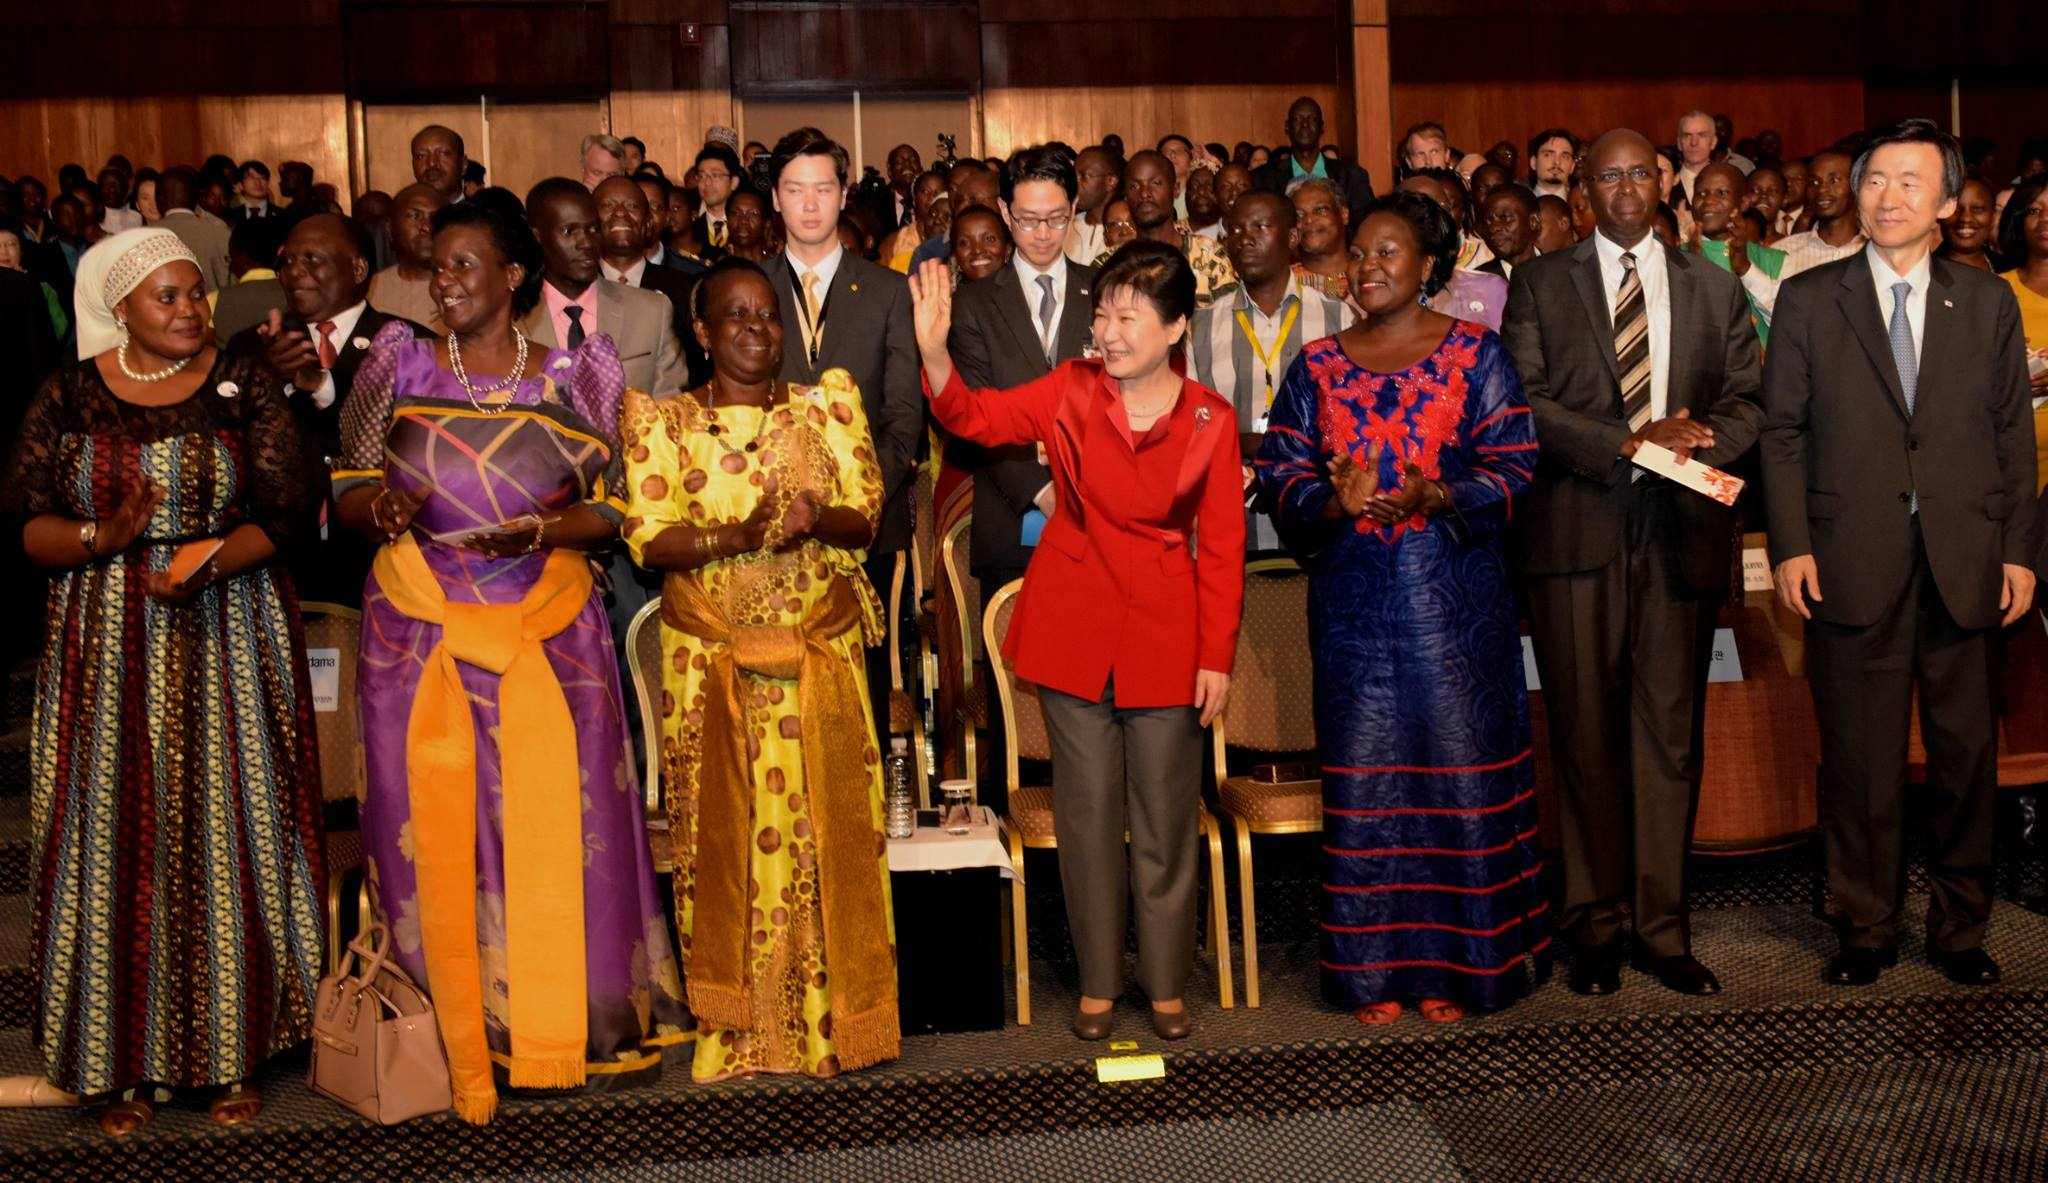 Park Geun-Hye when she visited Uganda in May